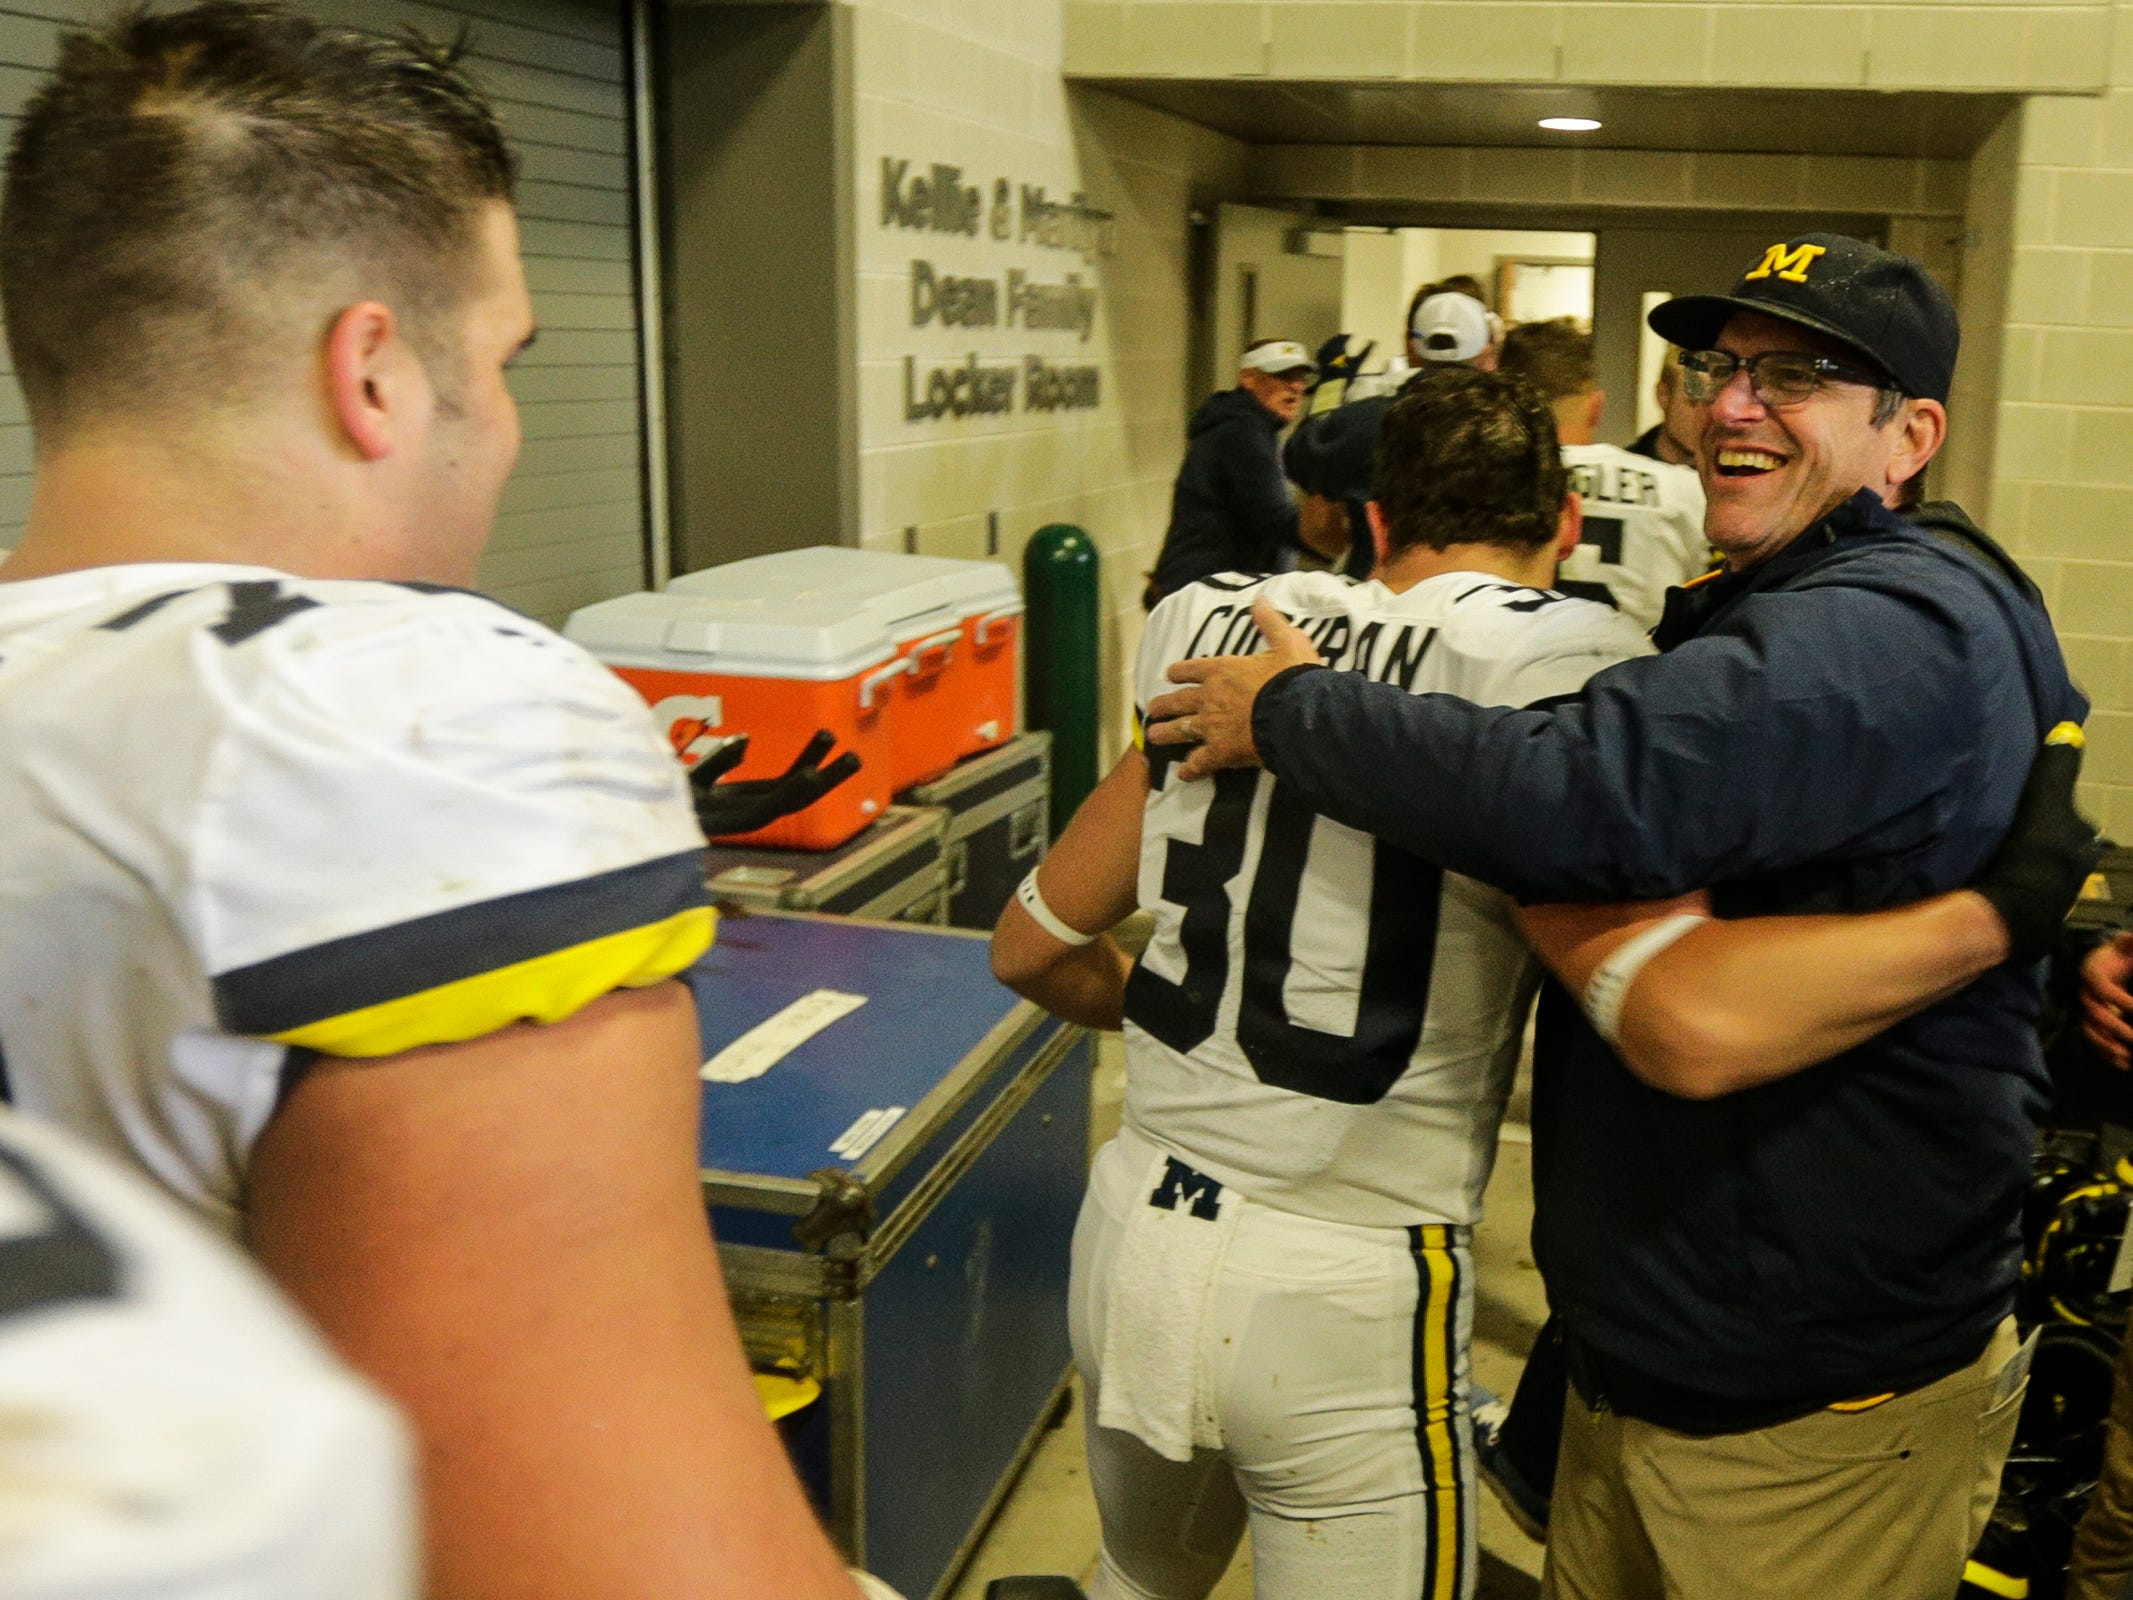 Michigan head coach Jim Harbaugh hugs defensive back Tyler Cochran outside the locker room to celebrate the 21-7 win over Michigan State at Spartan Stadium in East Lansing, Saturday, Oct. 20, 2018.